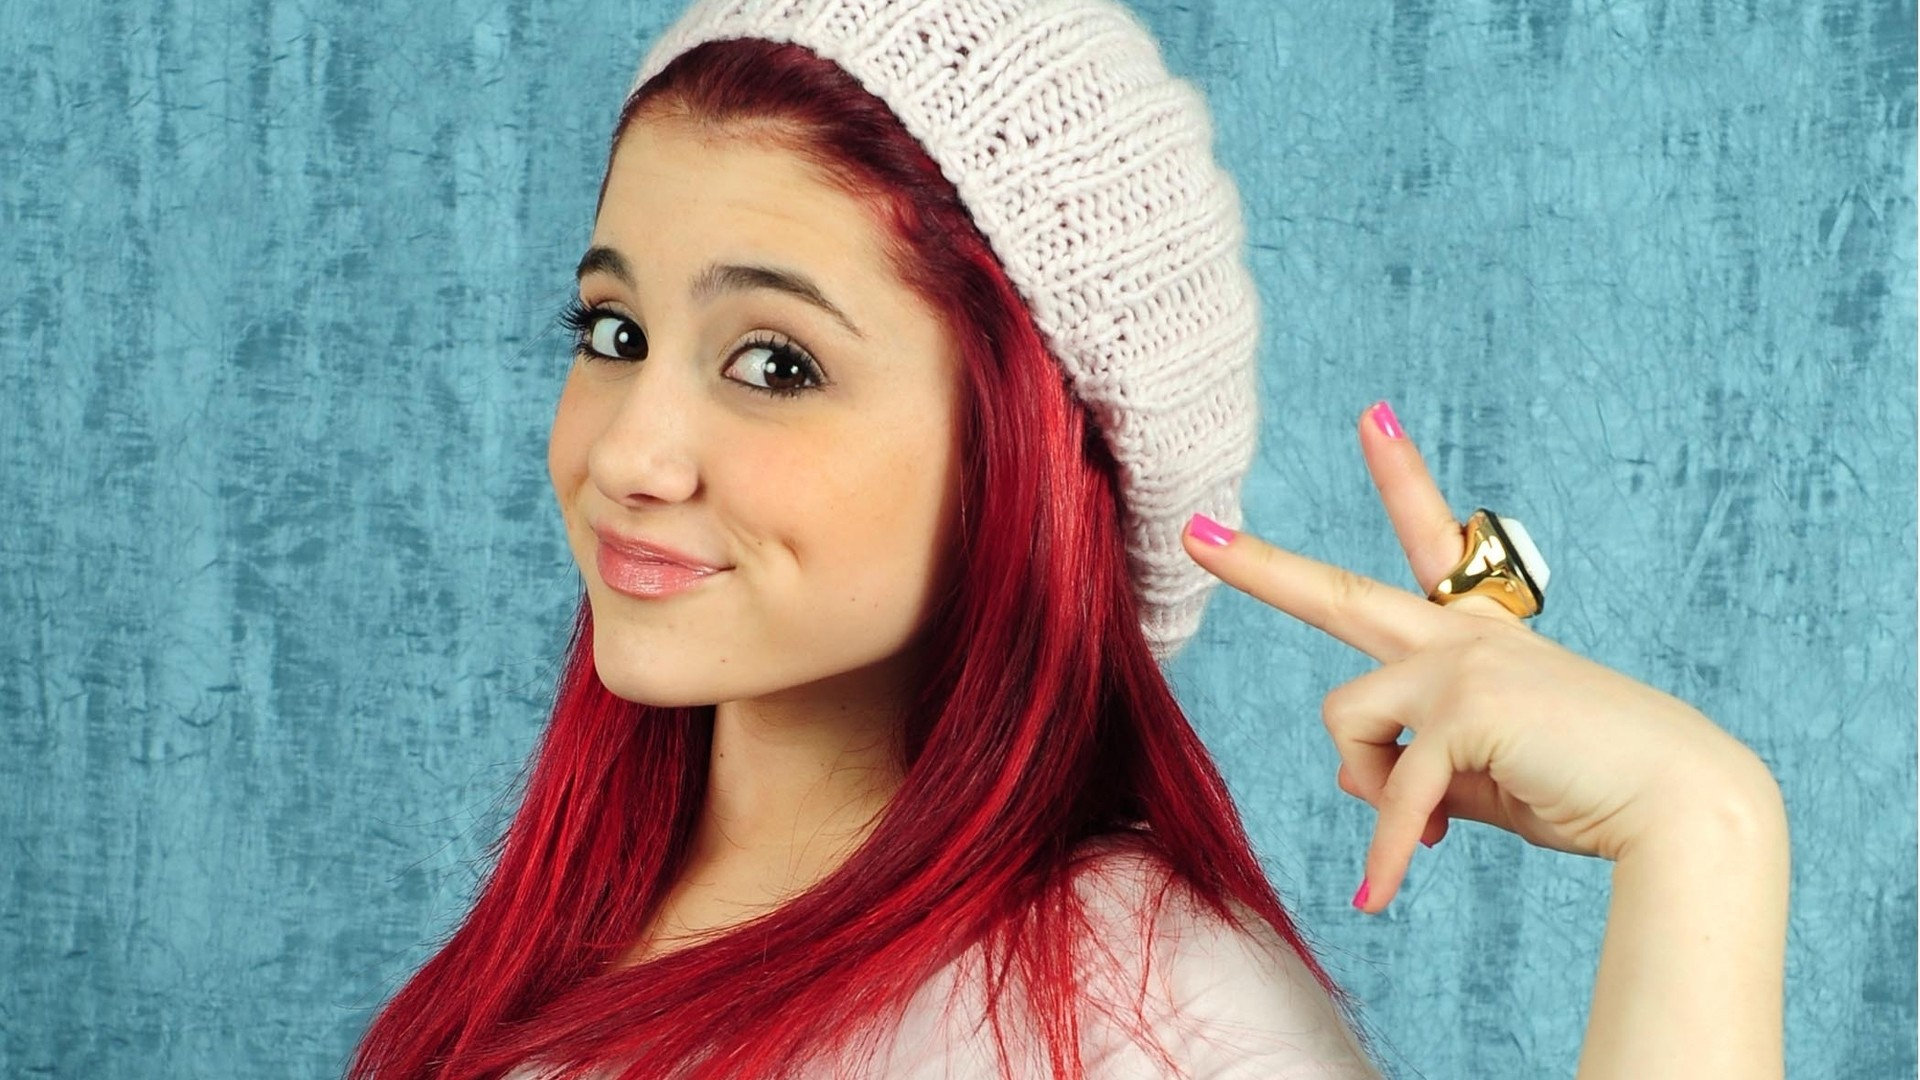 Ariana Grande Cute Pose Photos Wallpaper